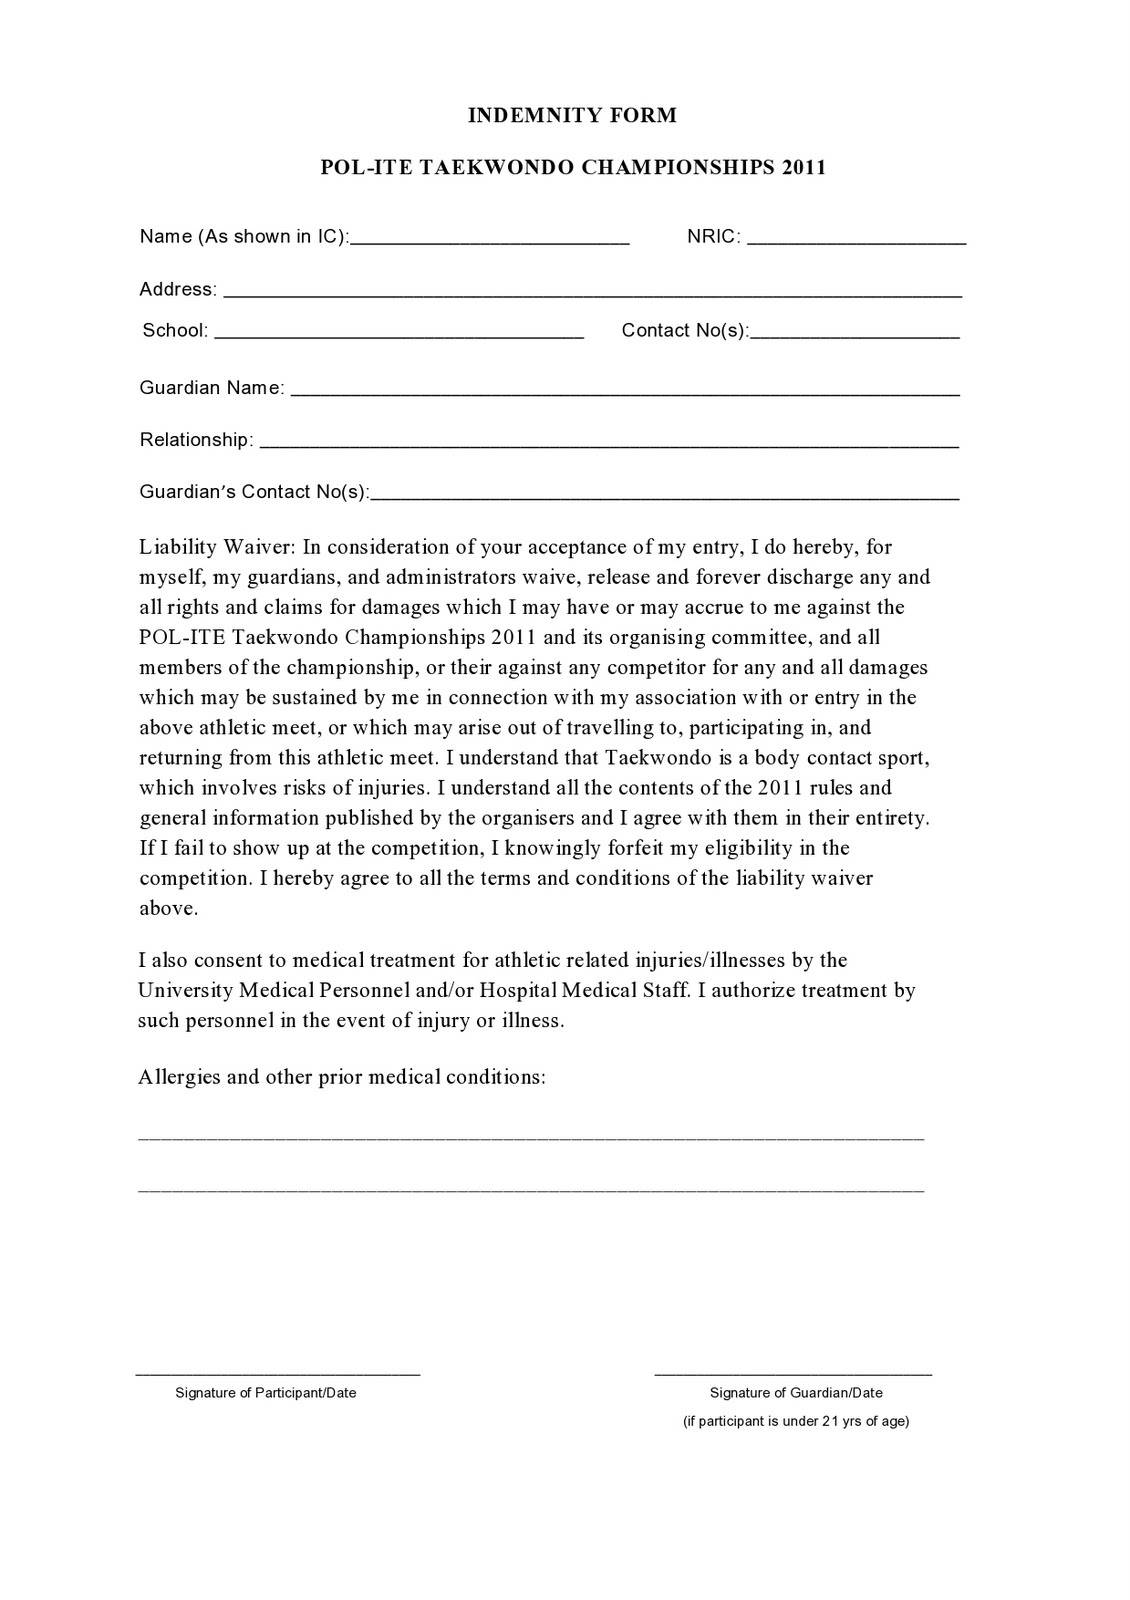 Indemnity Form Template Pdf